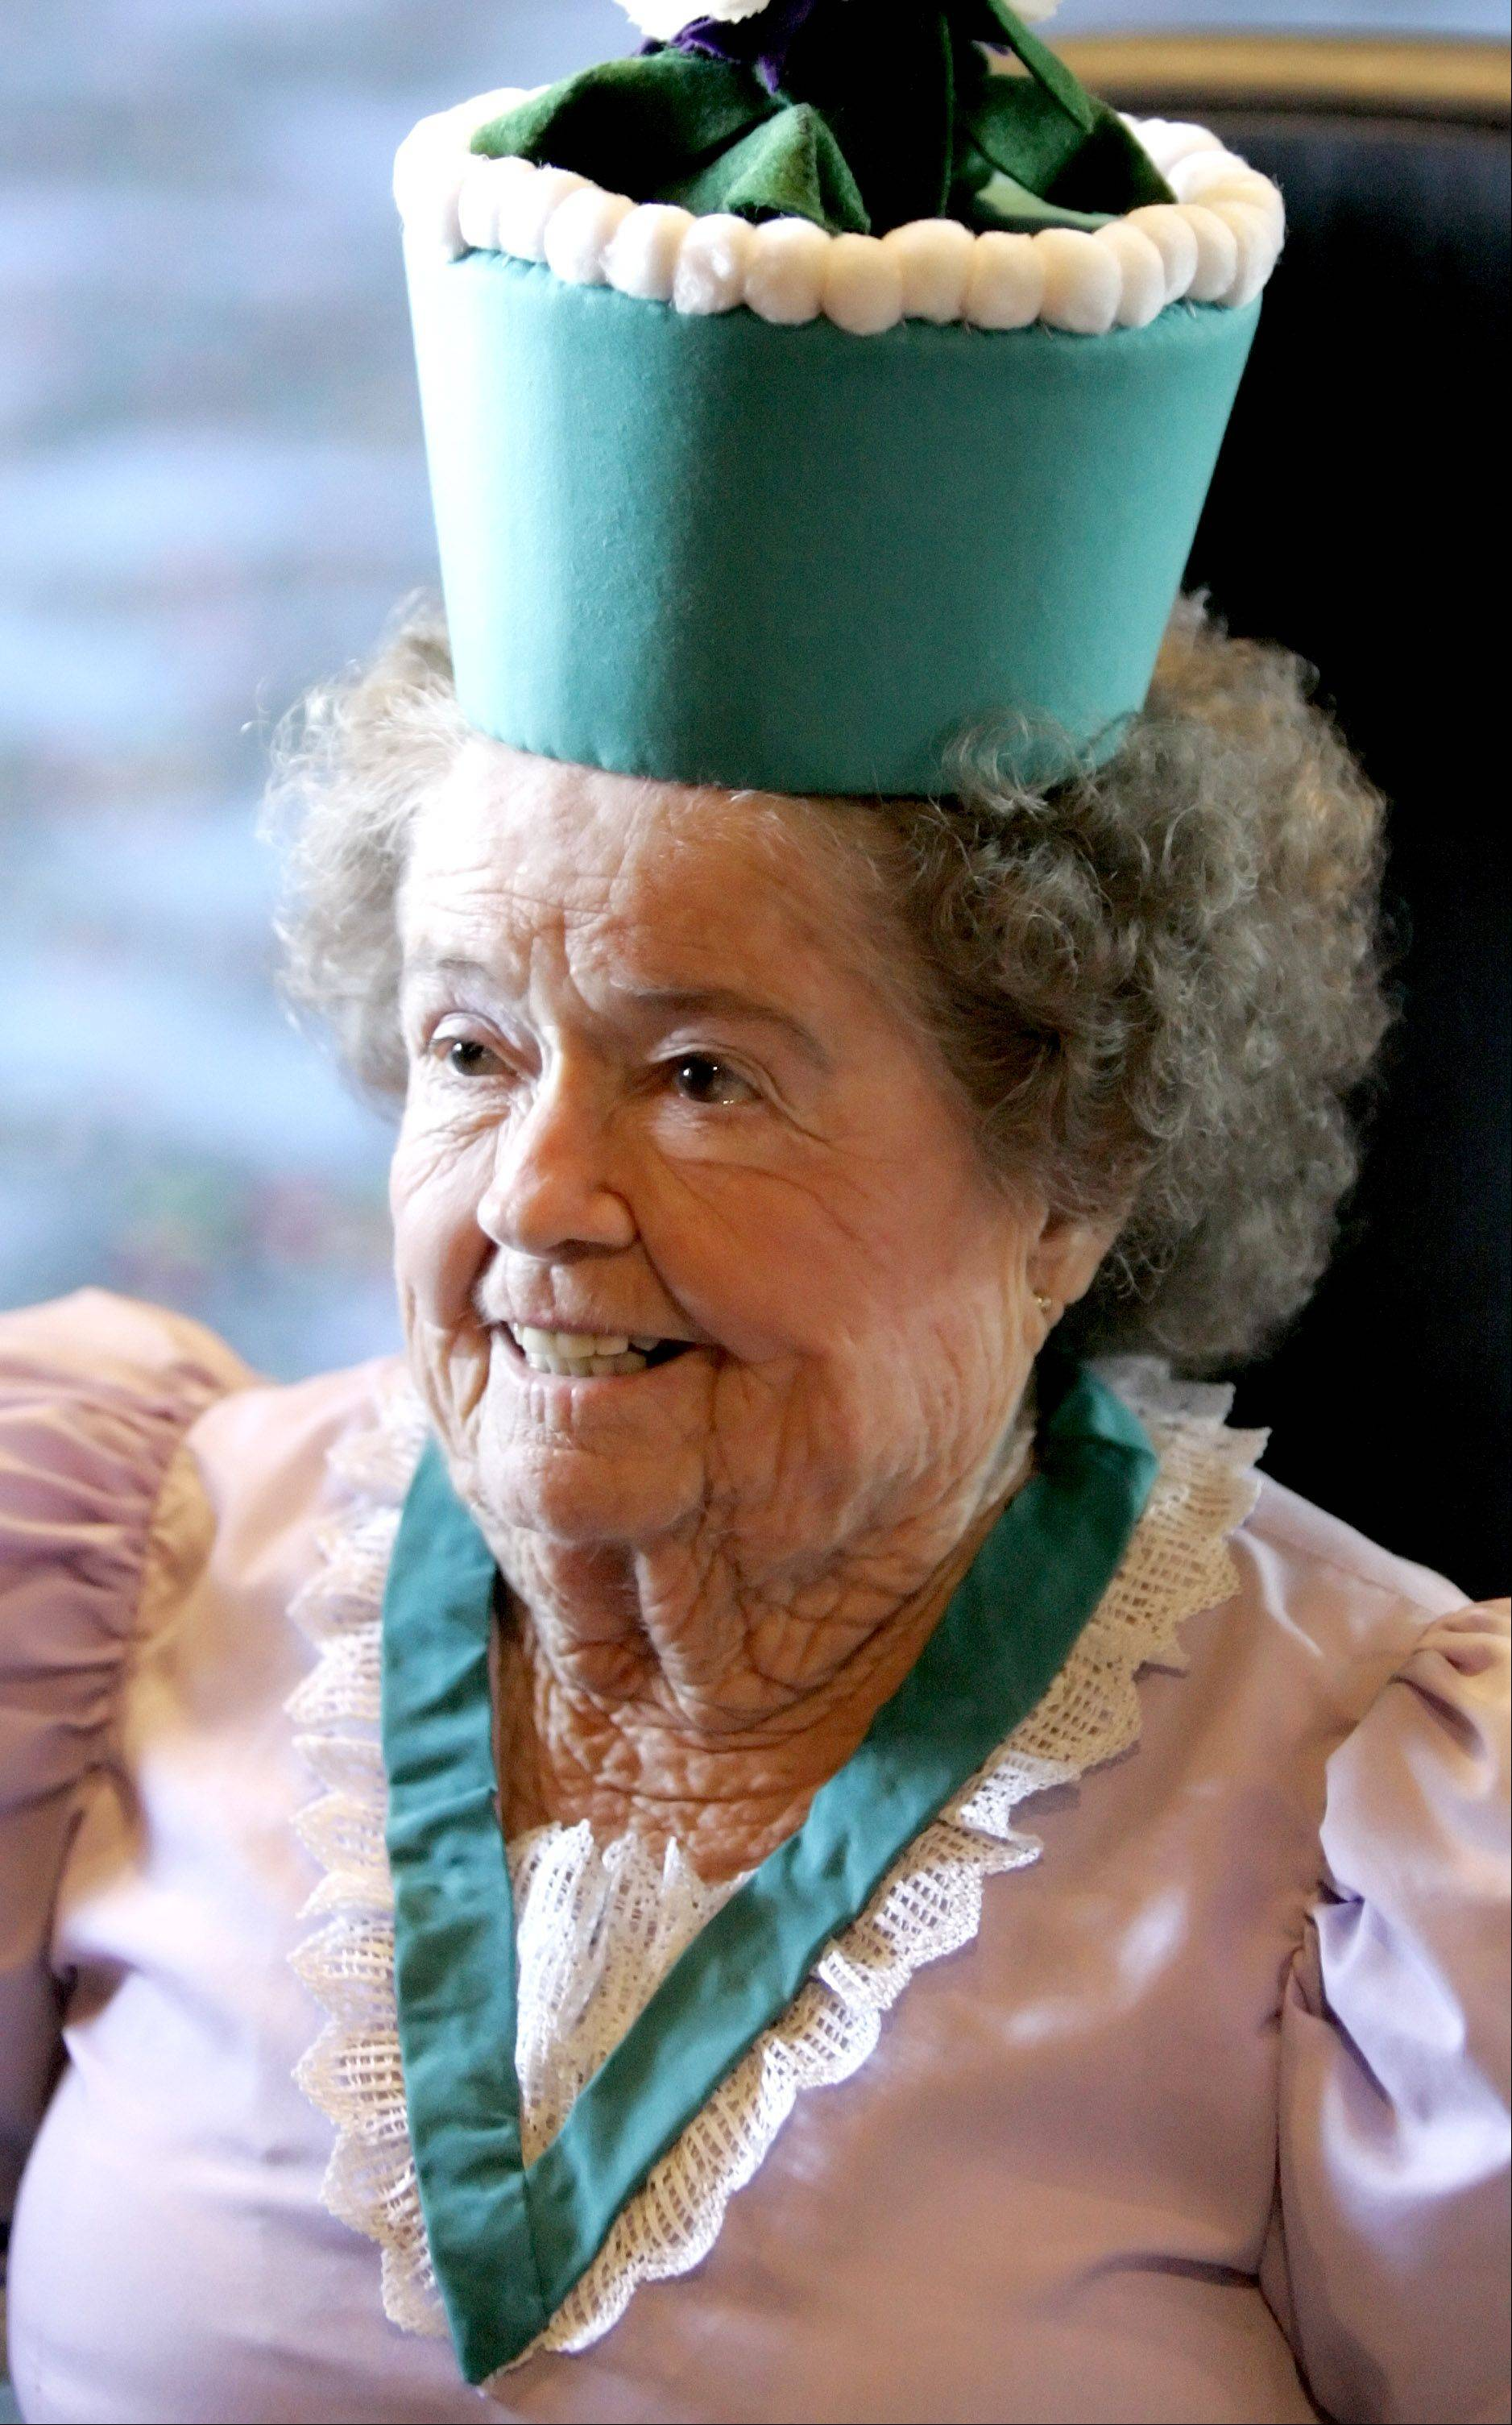 Margaret Pellegrini, one of the munchkins that appeared in the film The Wizard of Oz. She and three others visited Woodridge in November 2005 for a showing of the film this weekend.